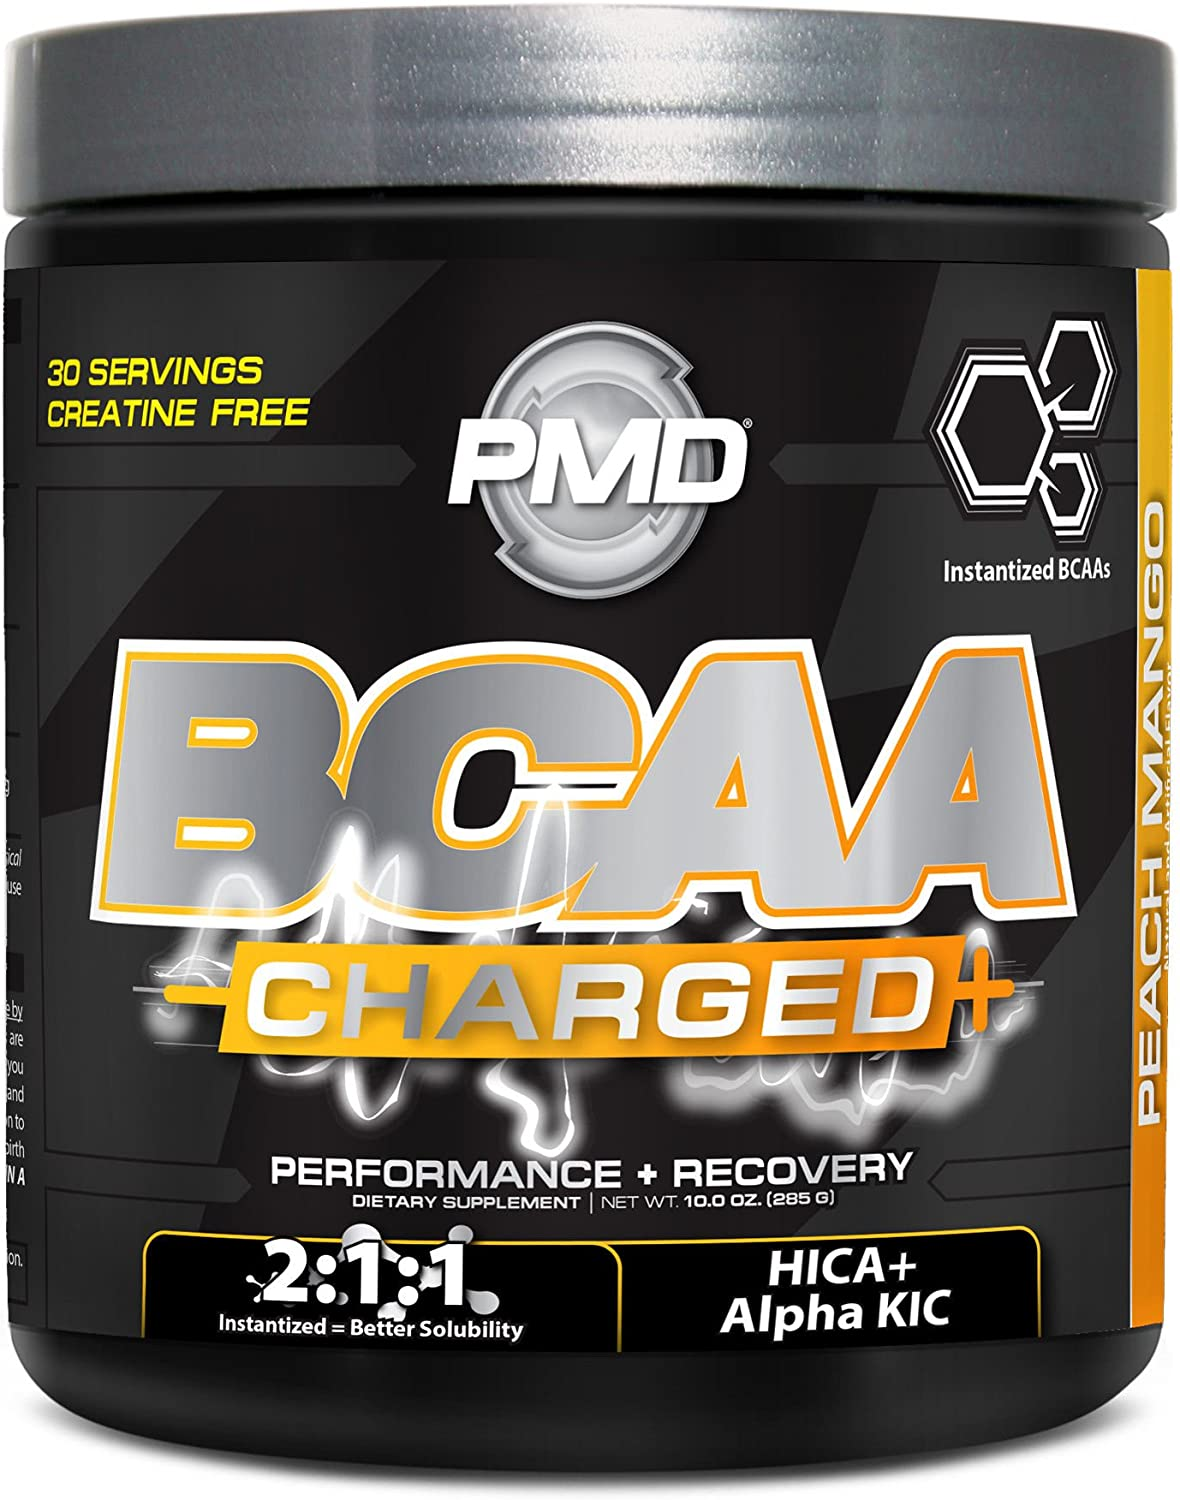 PMD Sports BCAA Charged Delicious Amino Acid Drink for Performance and Recovery – Increase Muscle Function for Workout and Daily Energy – Peach Mango – 30 Servings